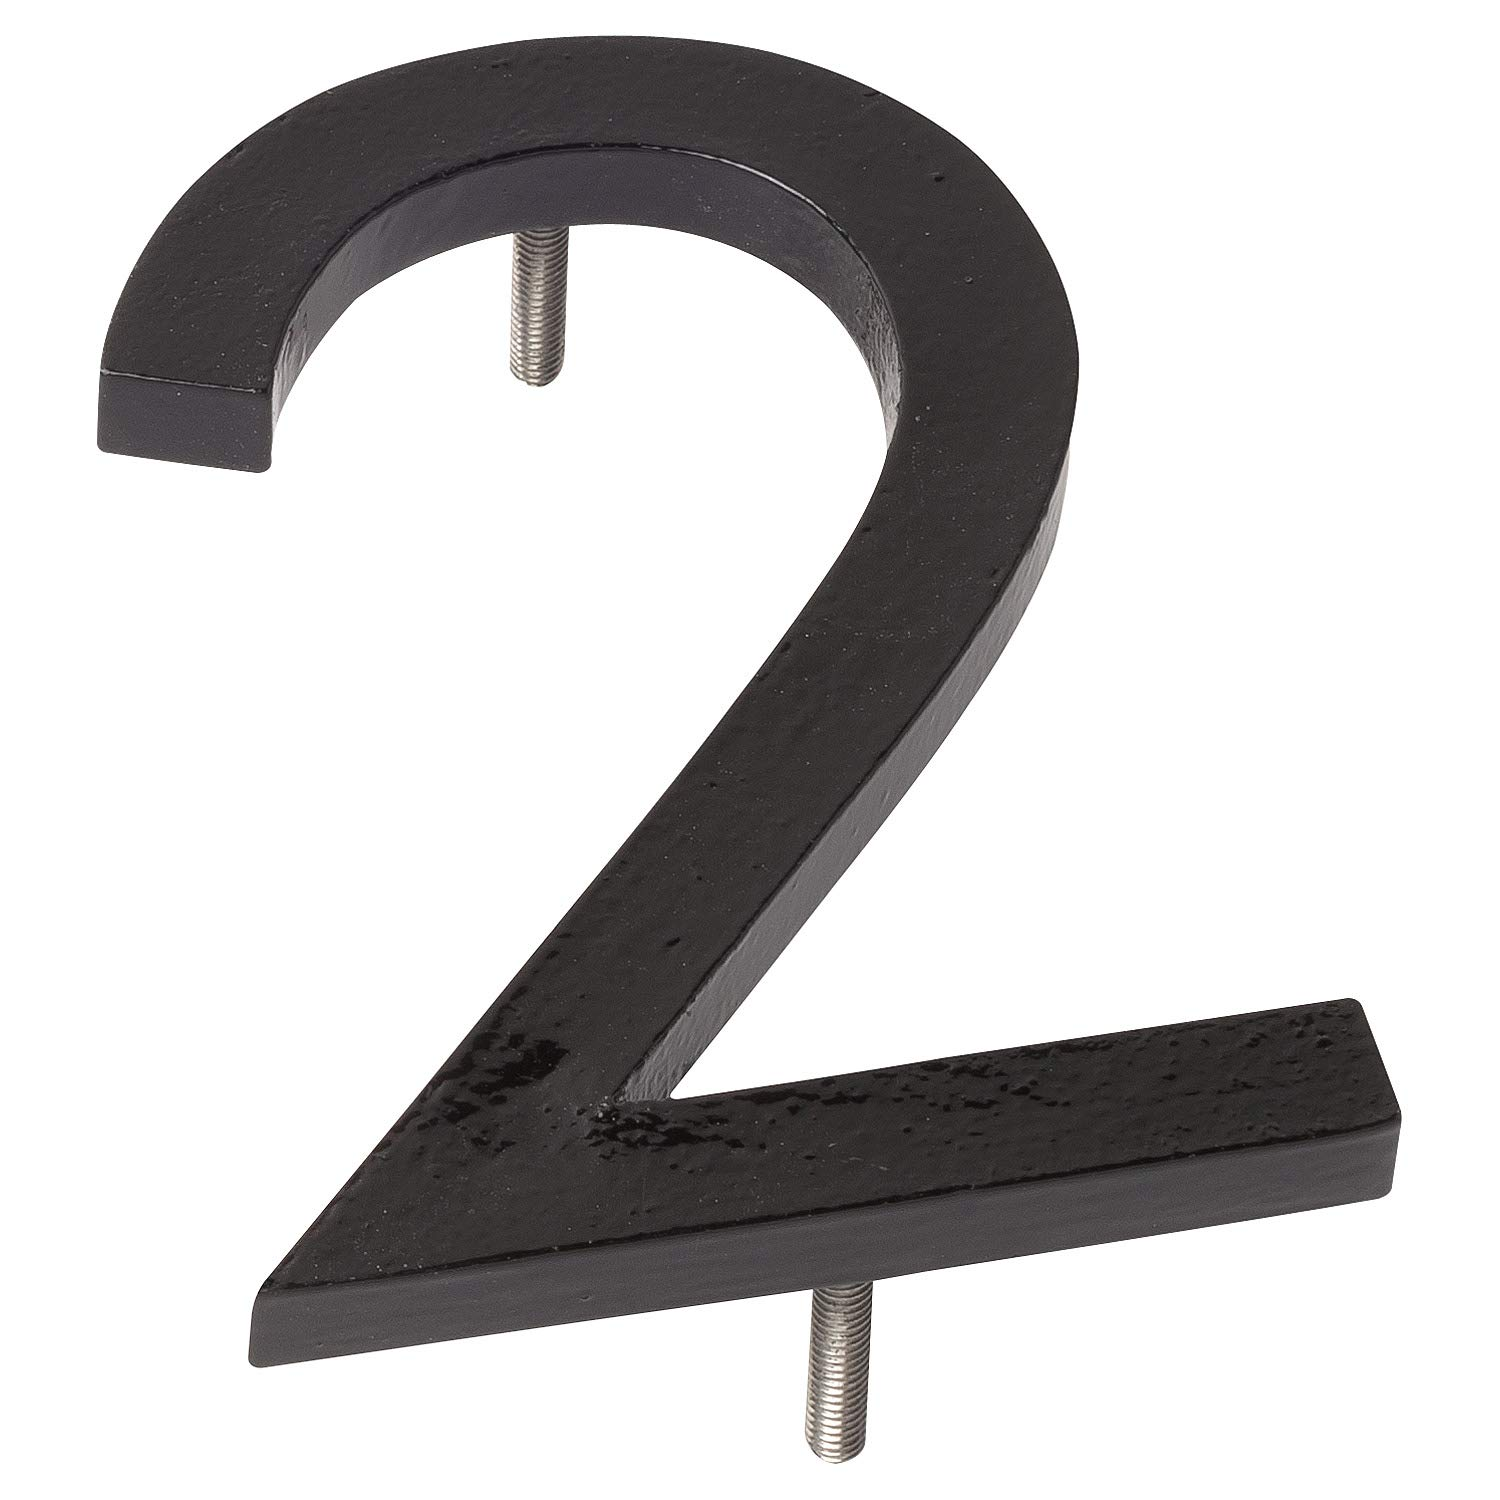 Montague Metal Products MHN-08-2-F-BK1 Floating House Number, 8' x 5.75' x 0.375' Black